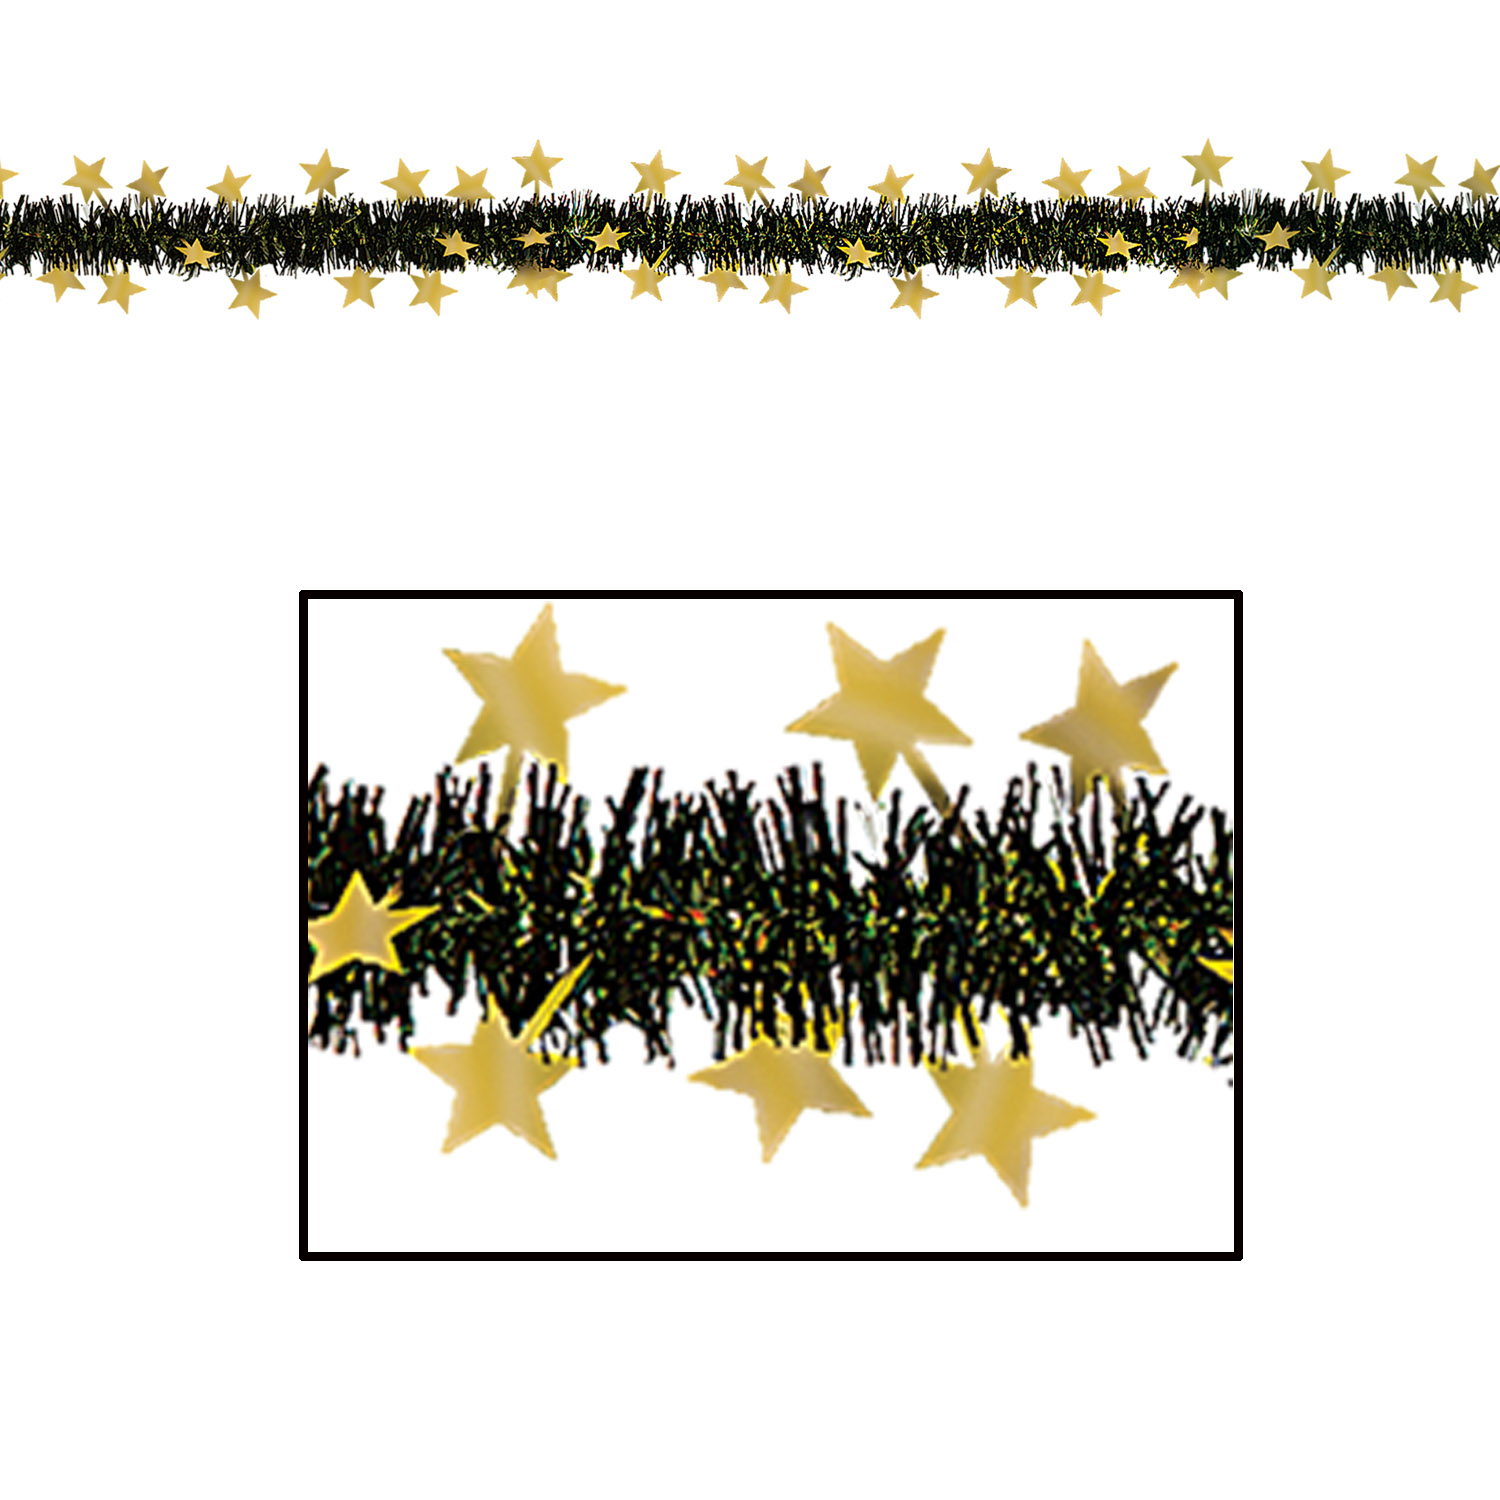 Metallic Star Garland (Pack of 12) Metallic Star Garland